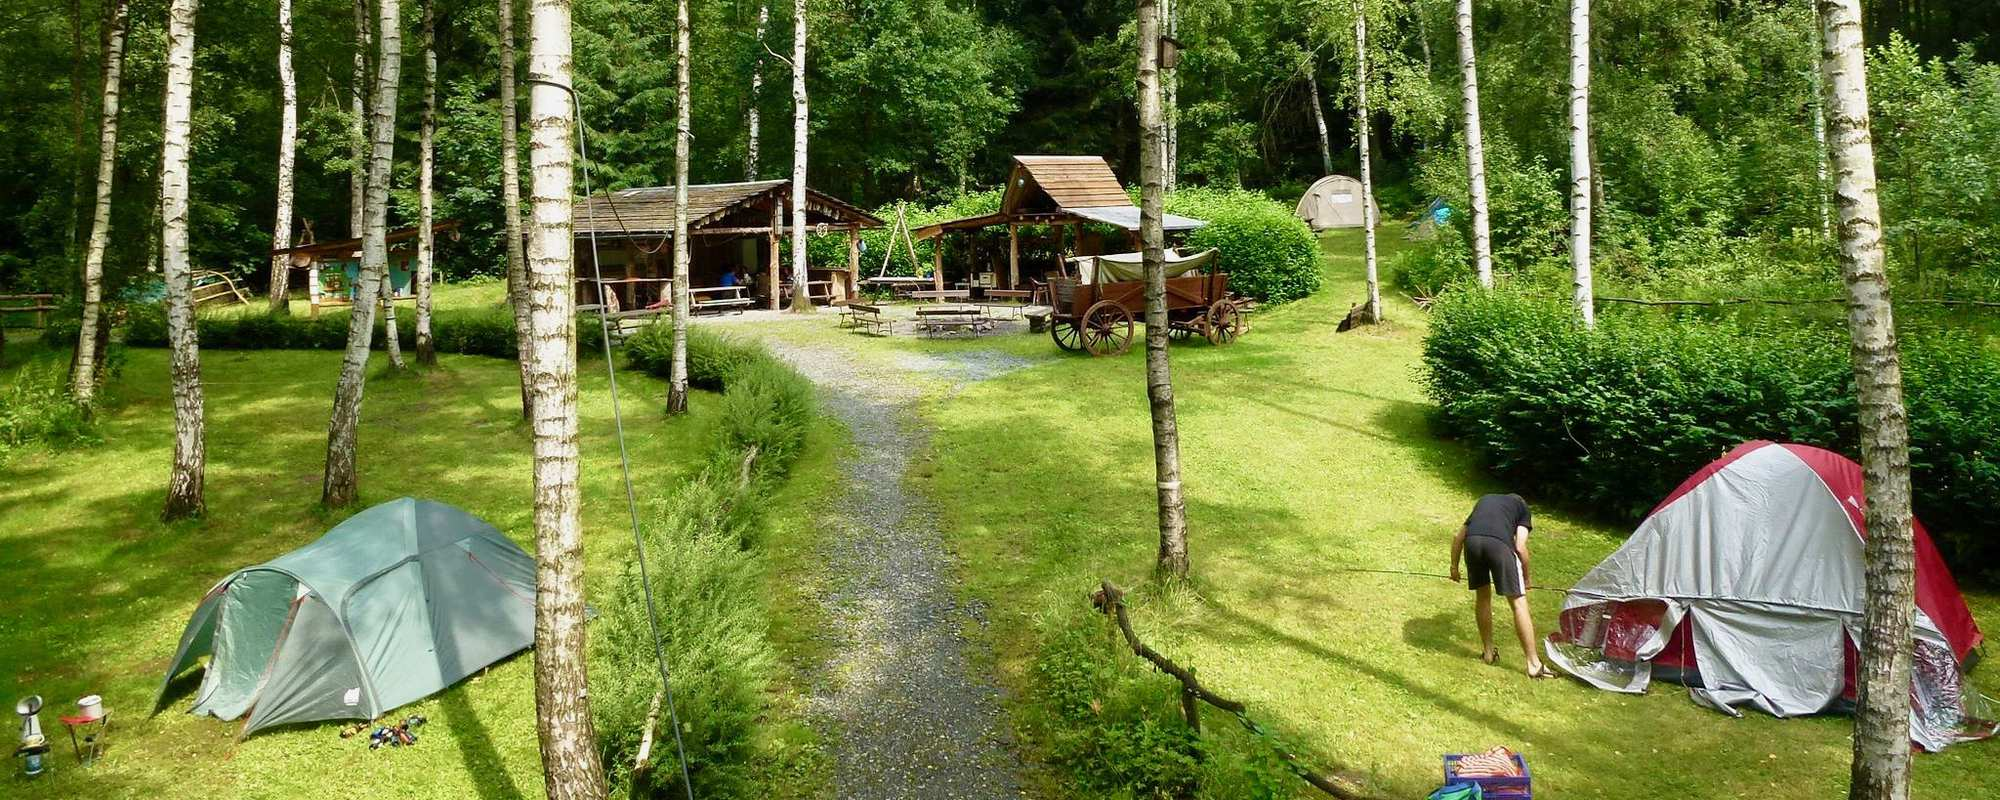 Nature campsites – 13 magical places around Germany | Komoot